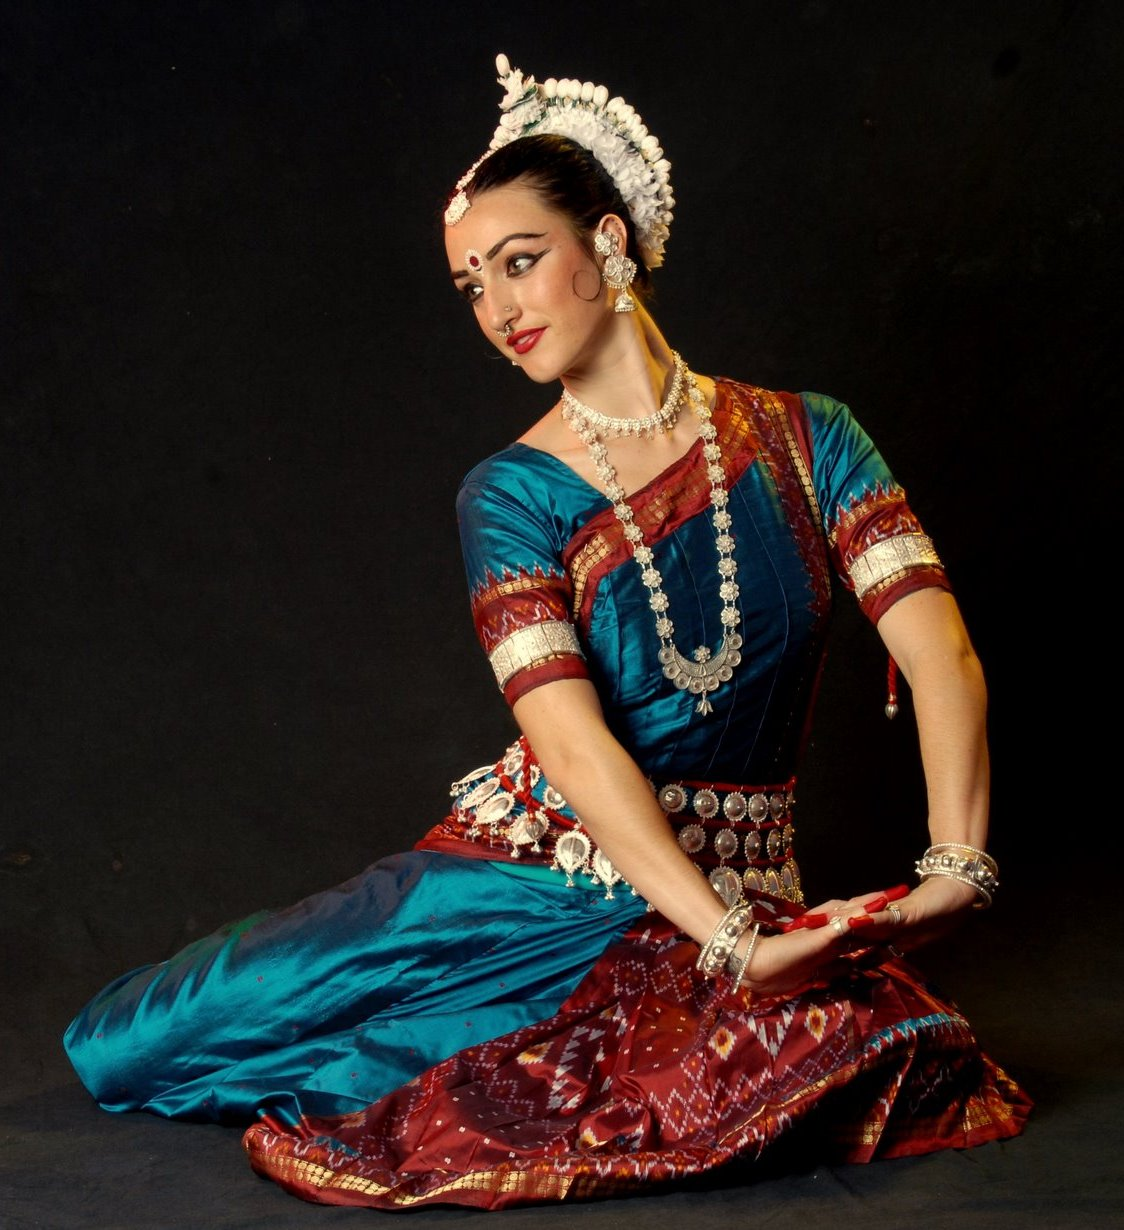 an introduction to kathak an indian Chhandika kathak dance offers classical indian dance cultural arts  will  introduce some students to basic footwork, poly-rhythms and music of kathak  indian.